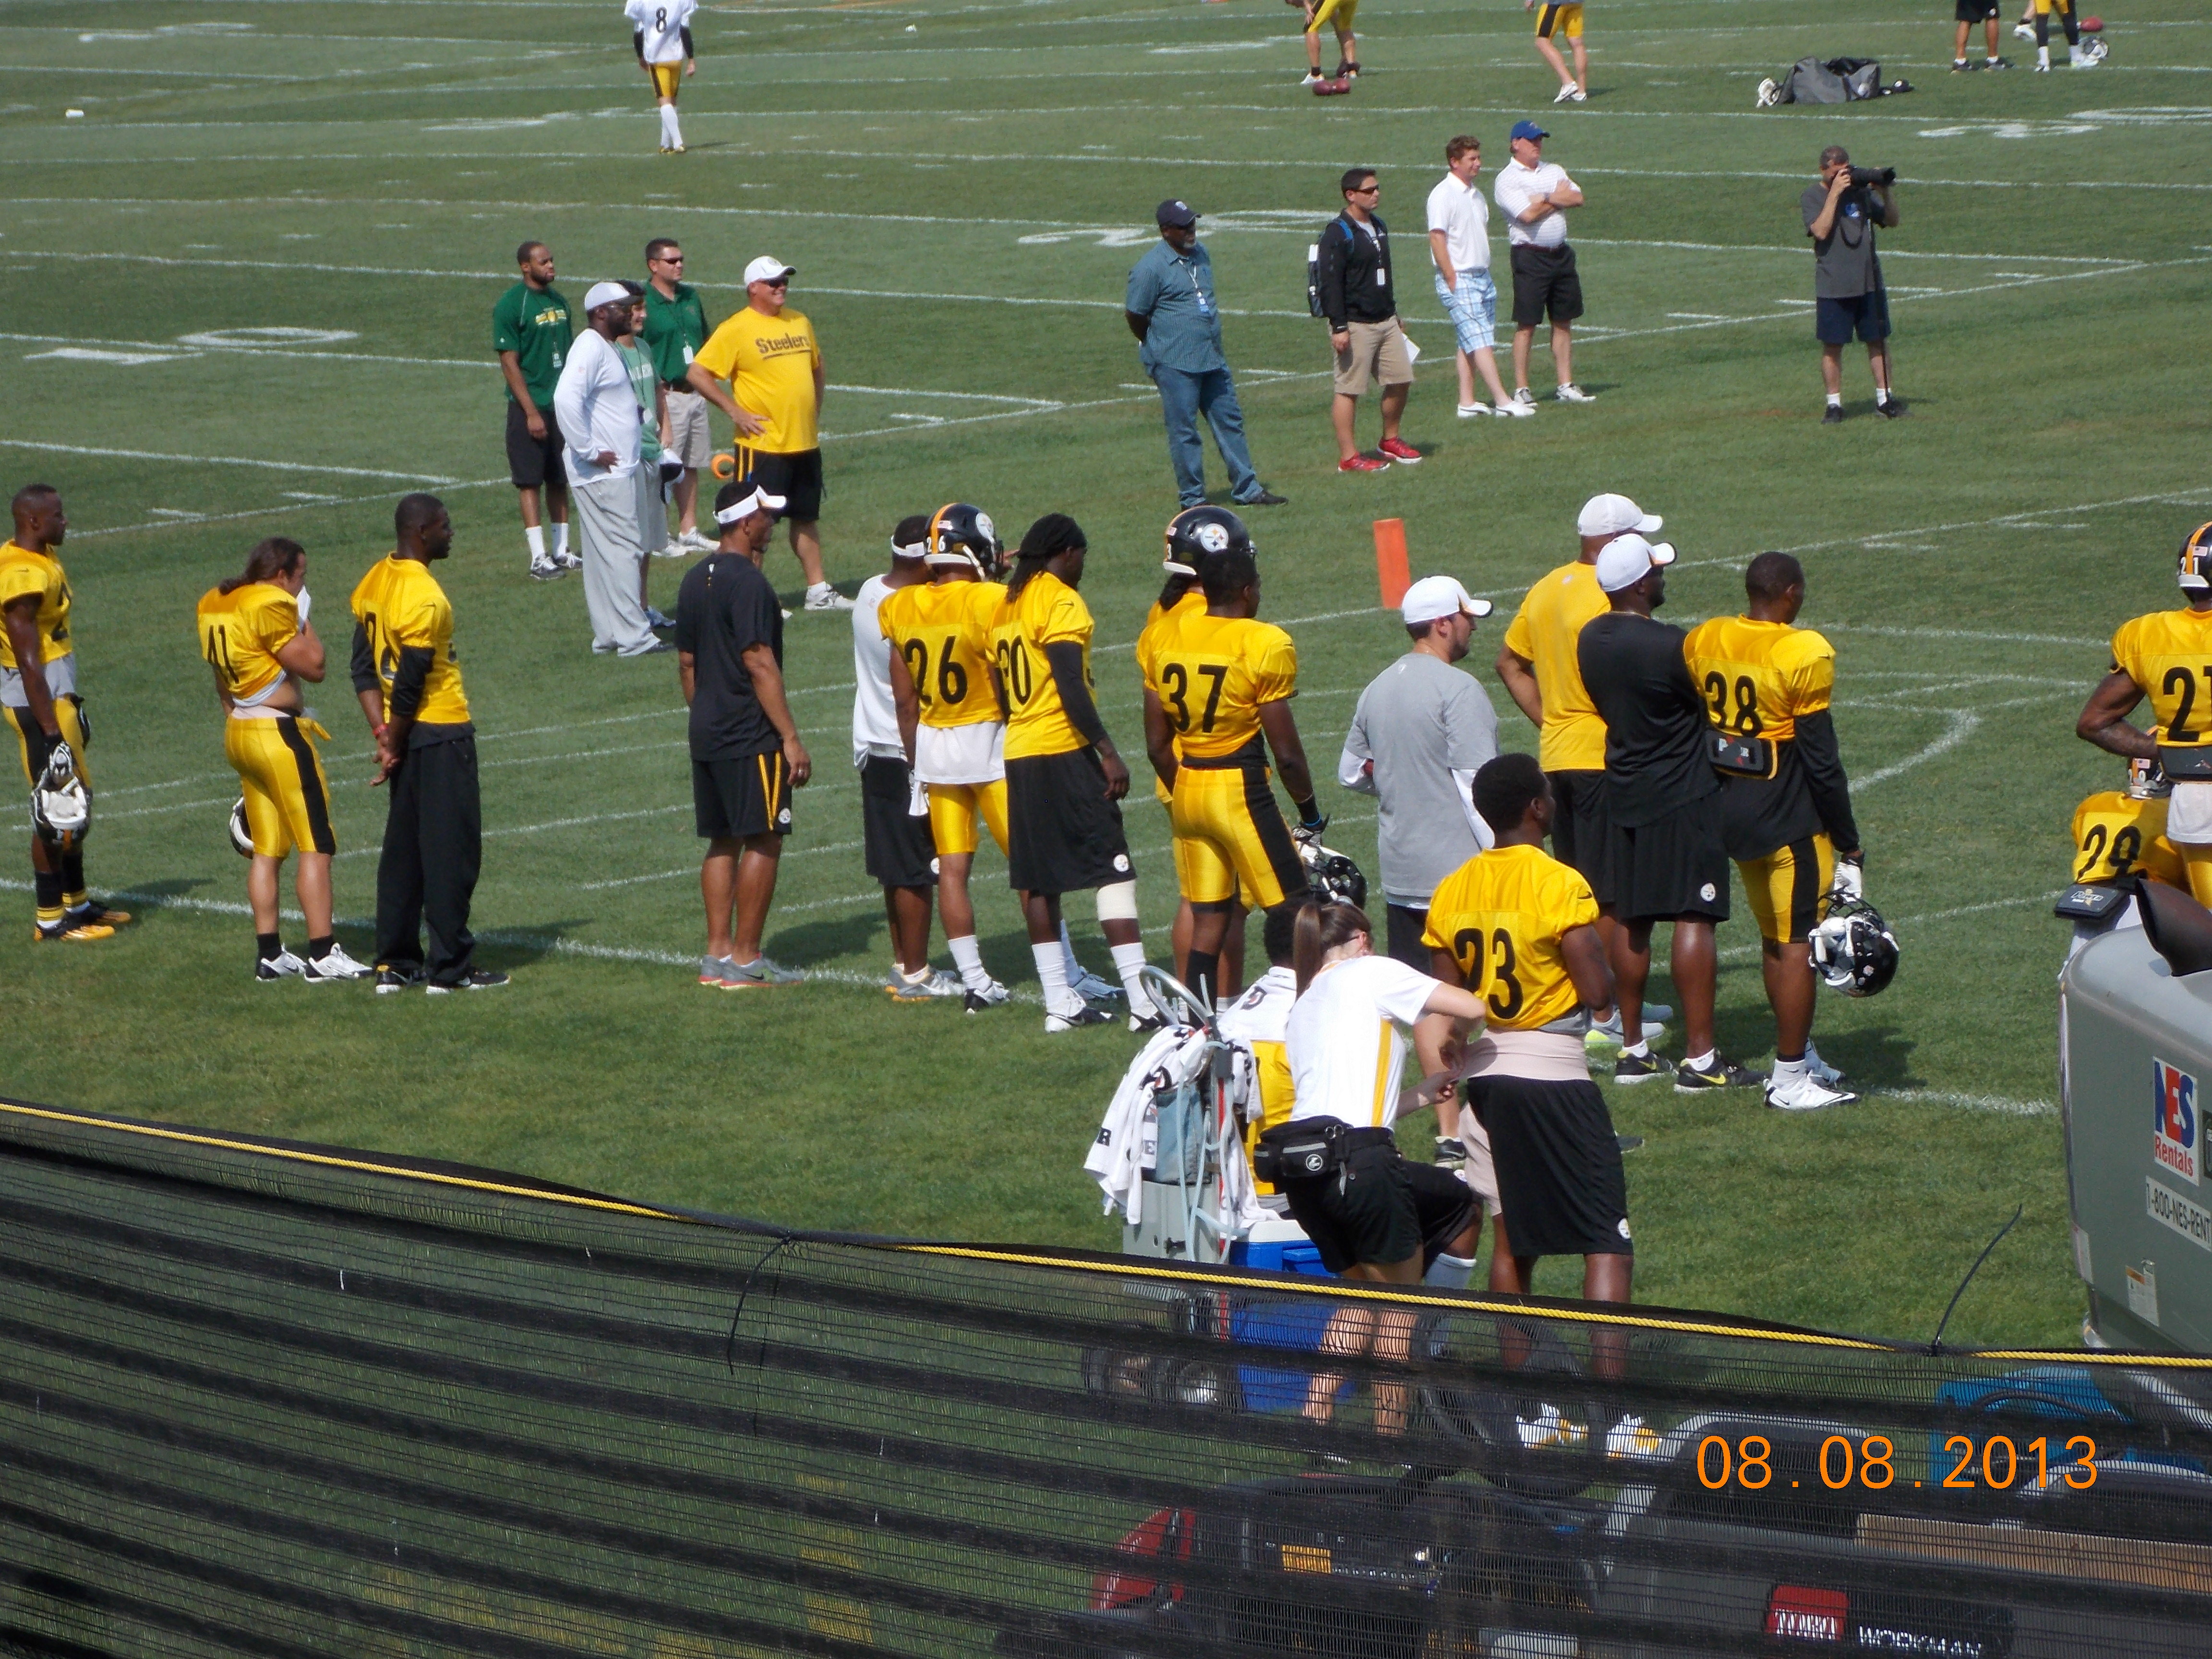 image Steelers training camp down time